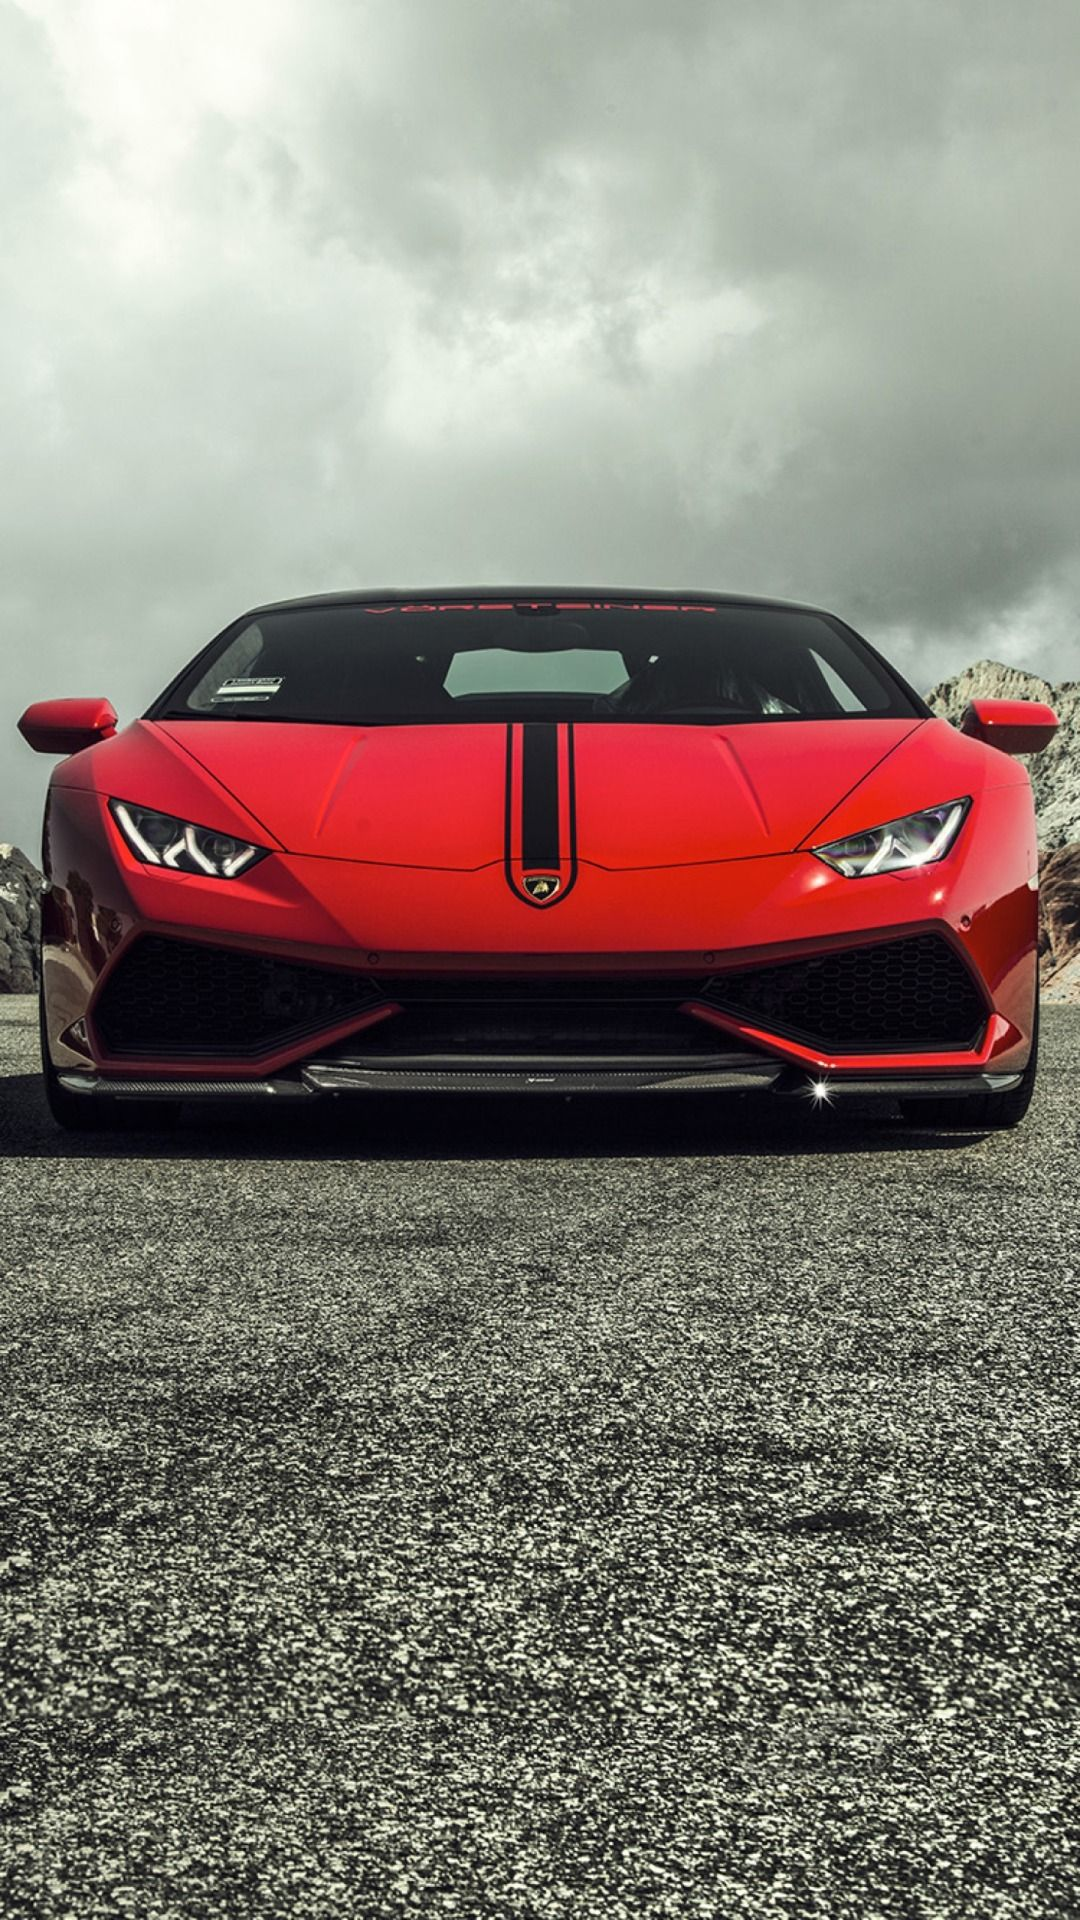 Iphone 6 Plus Lamborghini Iphone5 Car Lamborghinihuracan Sports